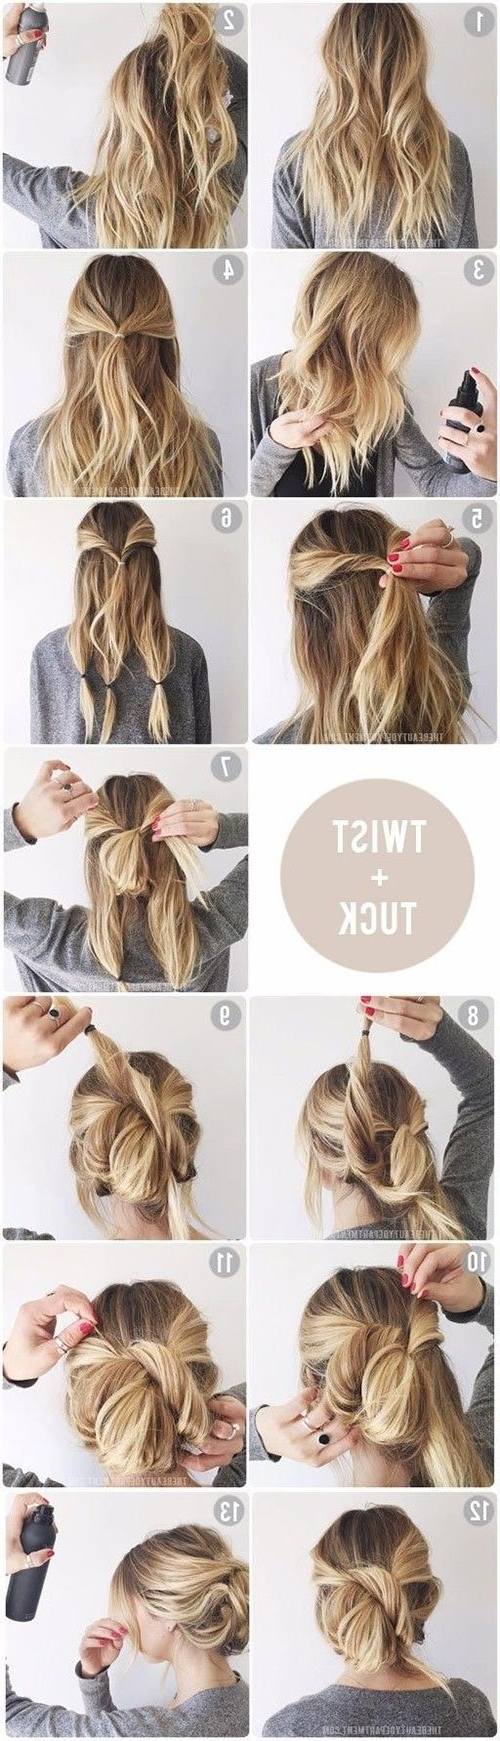 Long Hair Updos, How To Style For Prom, Hairstyle Tutorials For Long Hair Updo Hairstyles For Work (View 13 of 15)